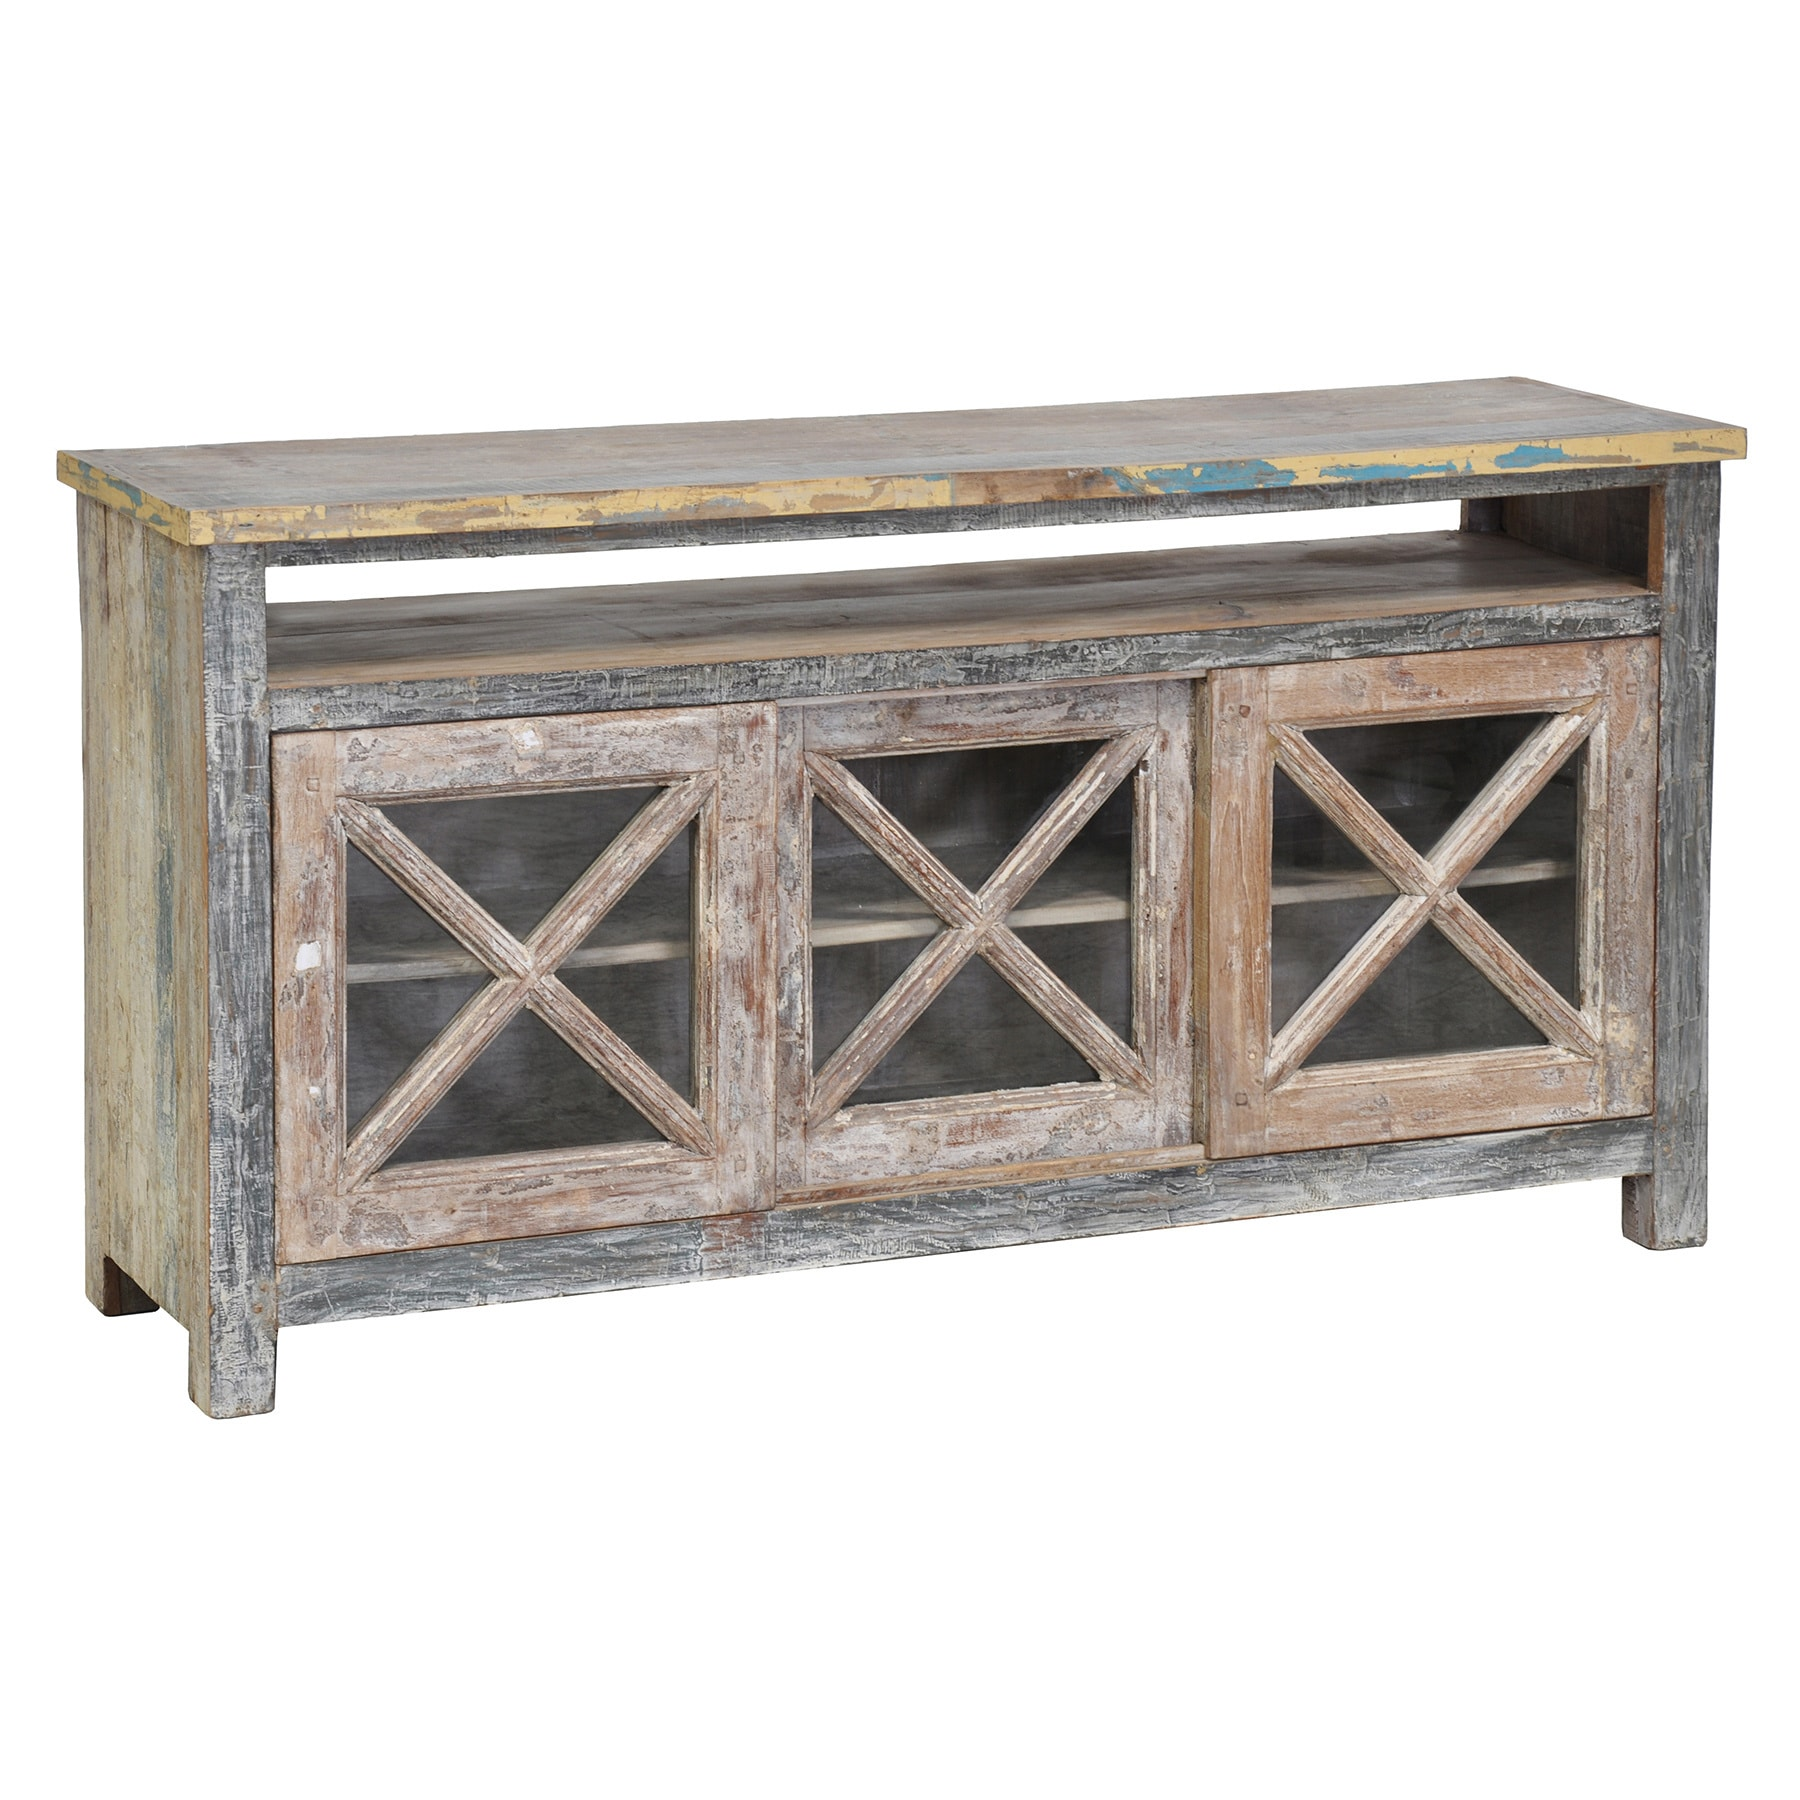 Kosas Collections Snipe Reclaimed Wood 3-door TV Stand at Sears.com